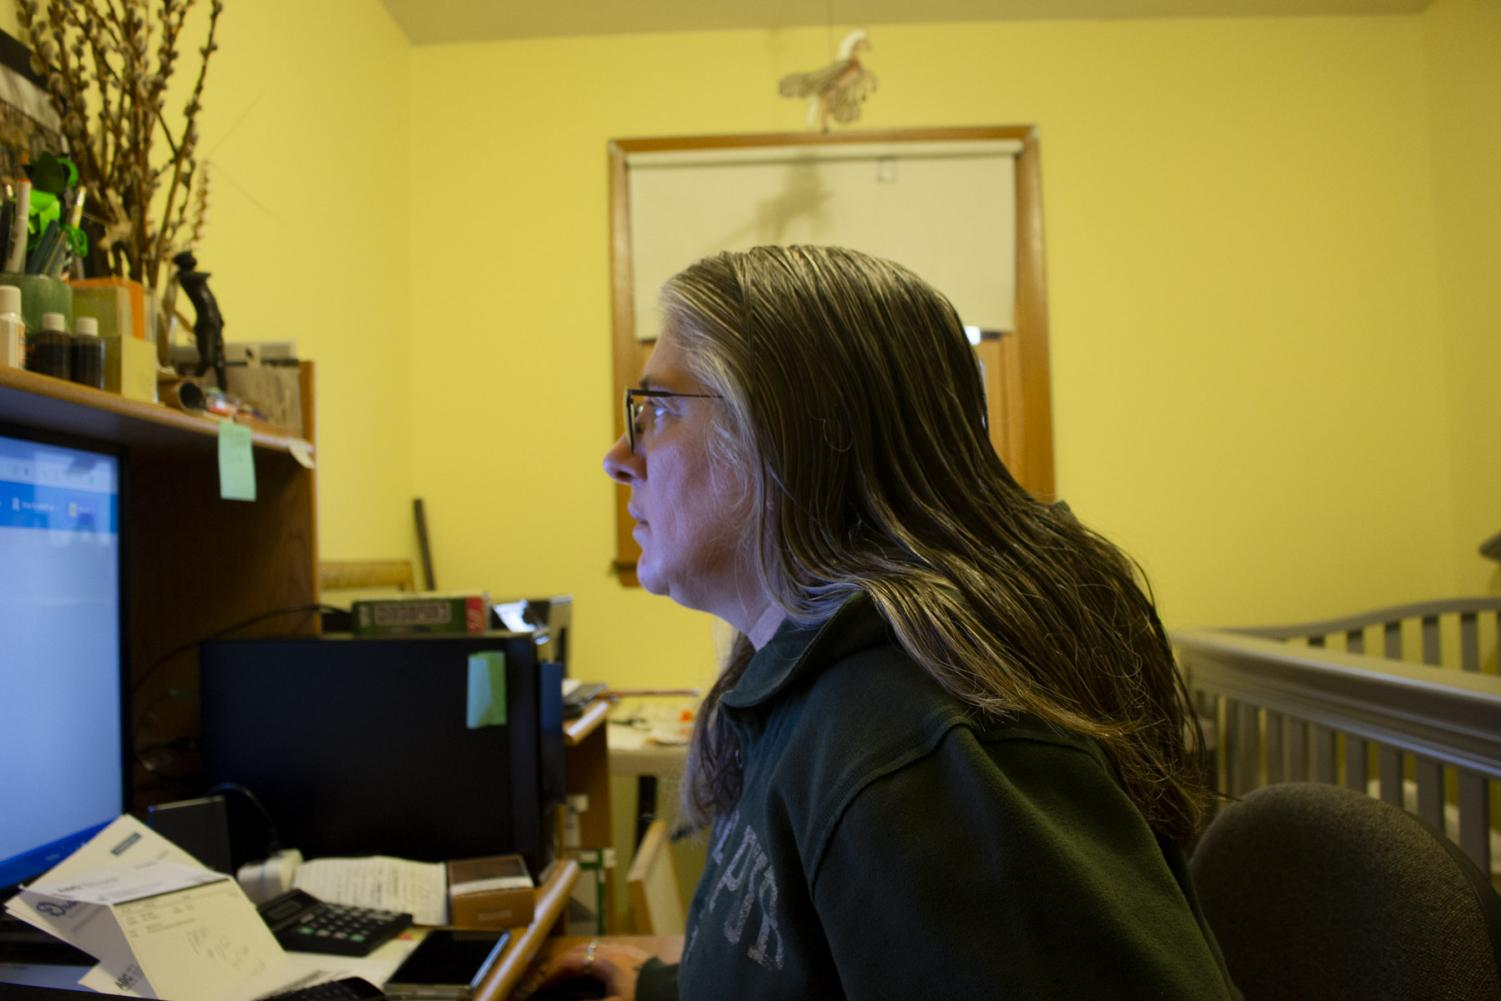 Terese Brunner works on filling out unemployment forms after losing her jobs due to the shelter in place order on April 6, 2020, at her home in New Holstein, Wis. Two out of her three jobs have already asked her to come back when it is safe to do so.